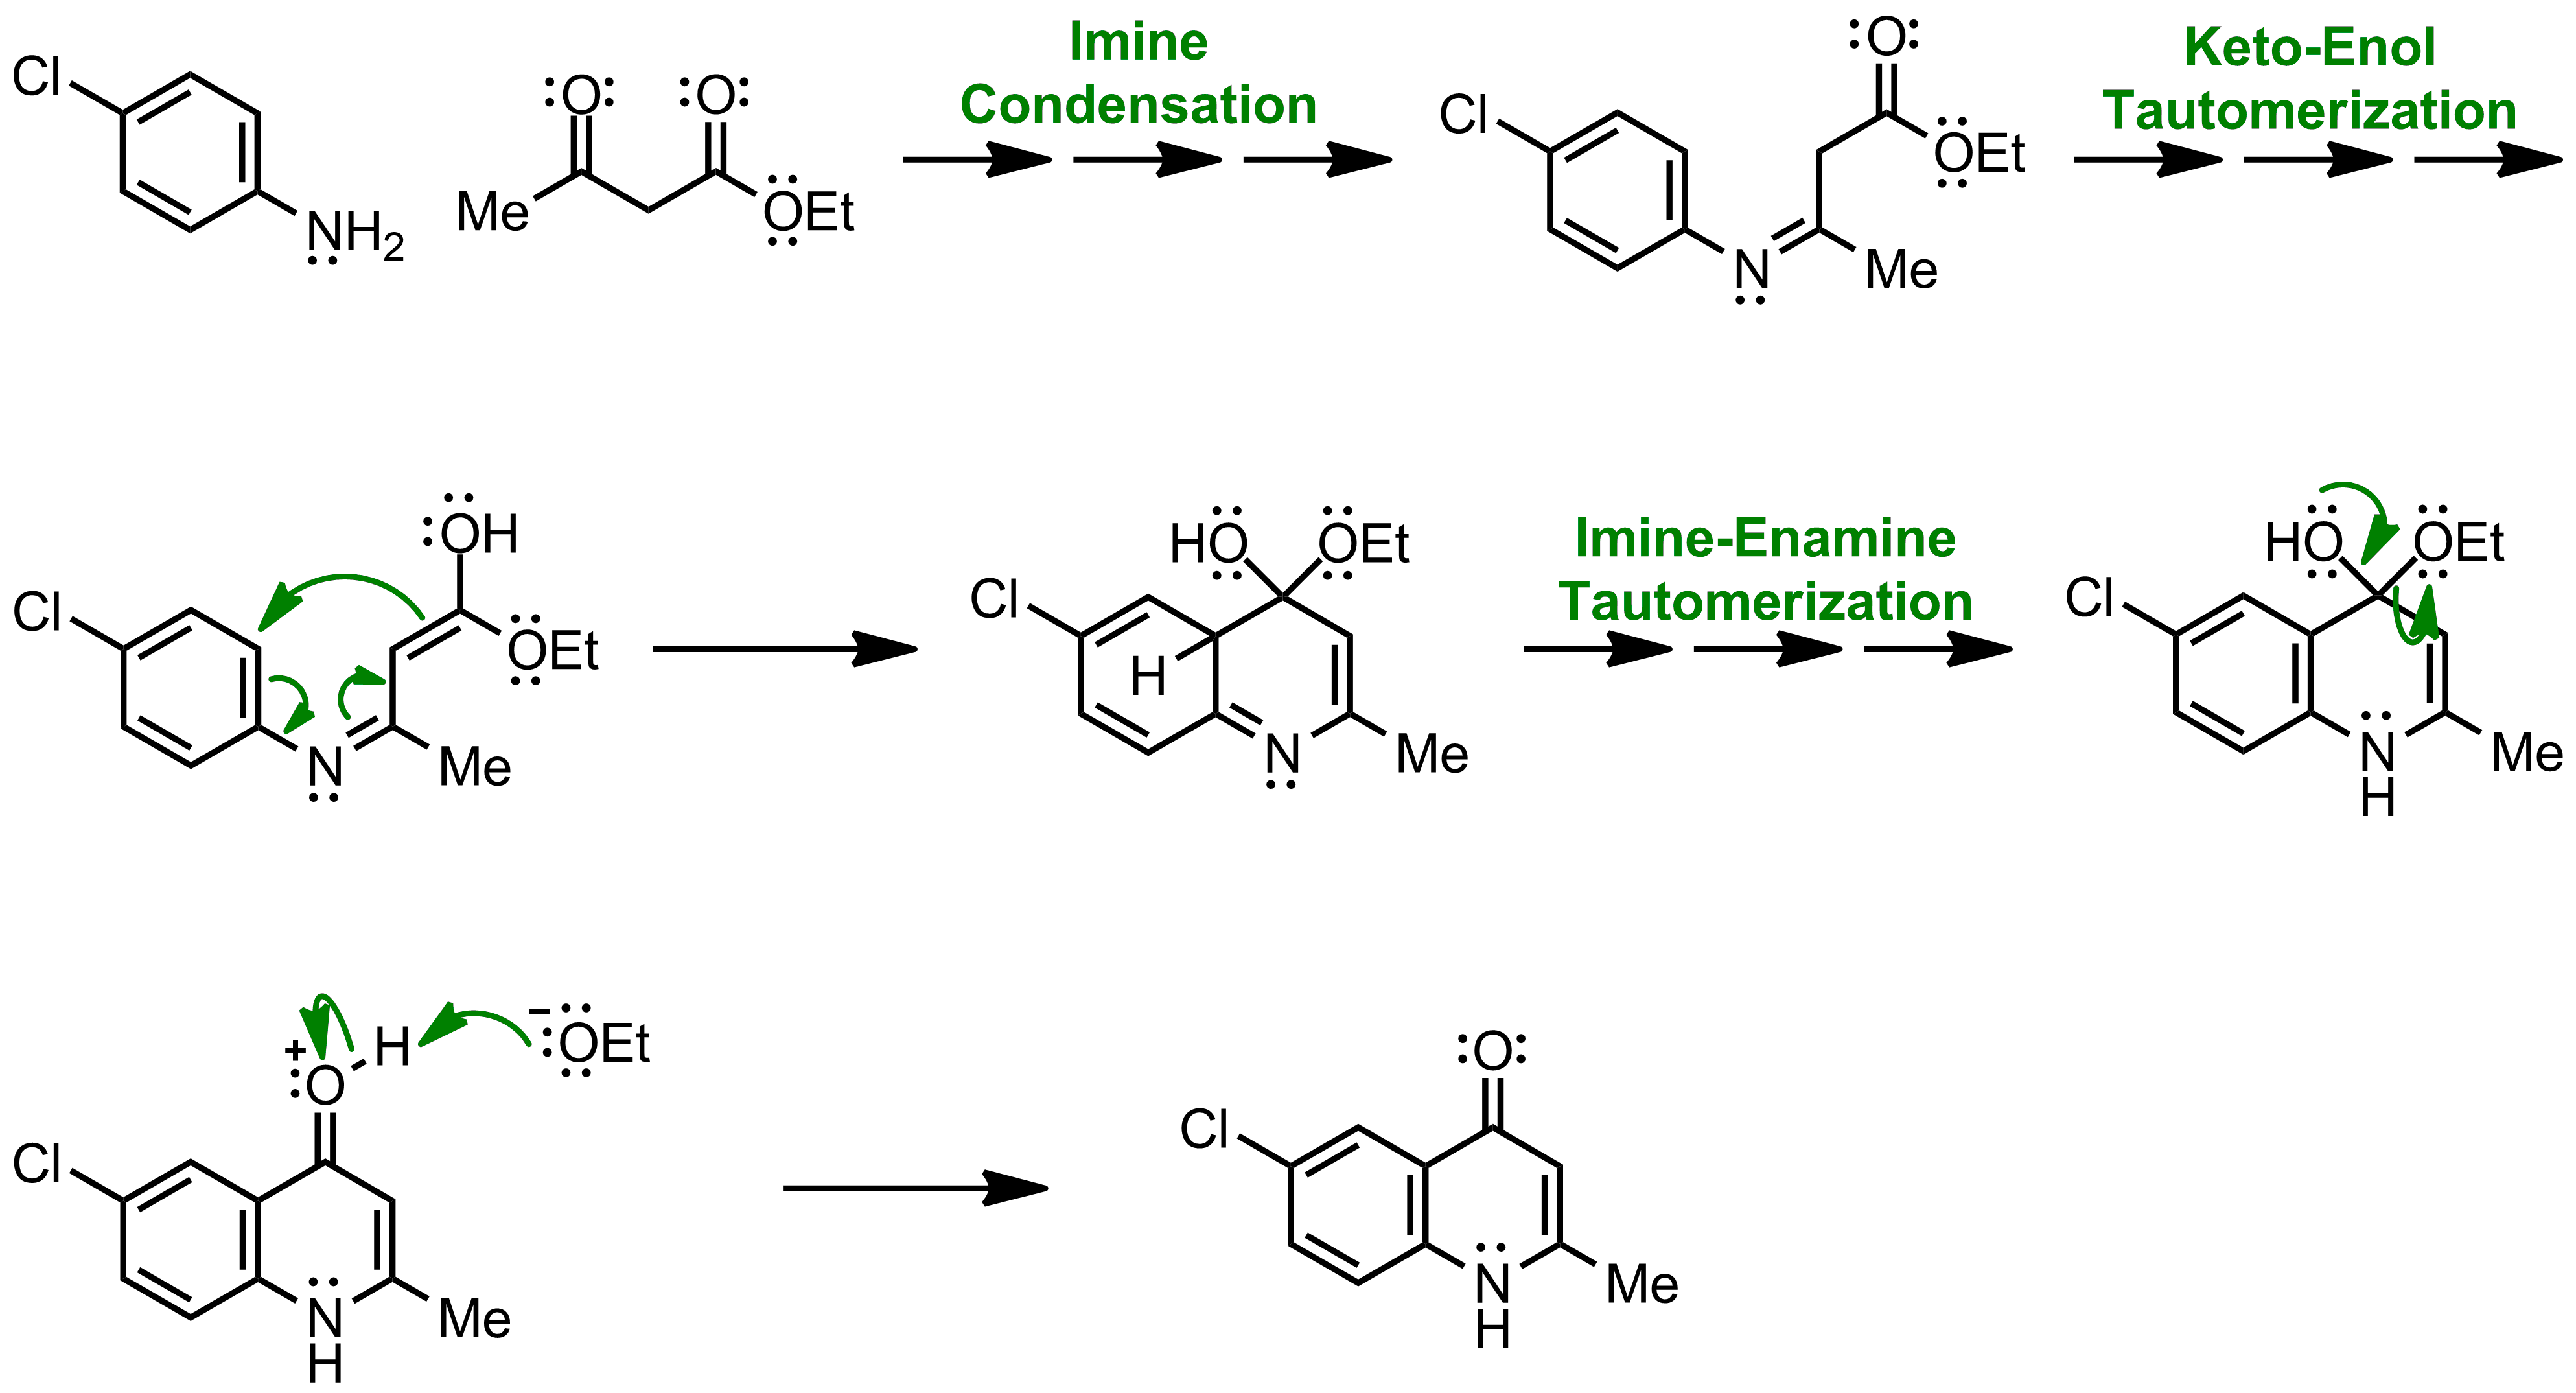 Mechanism of the Conrad-Limpach Synthesis